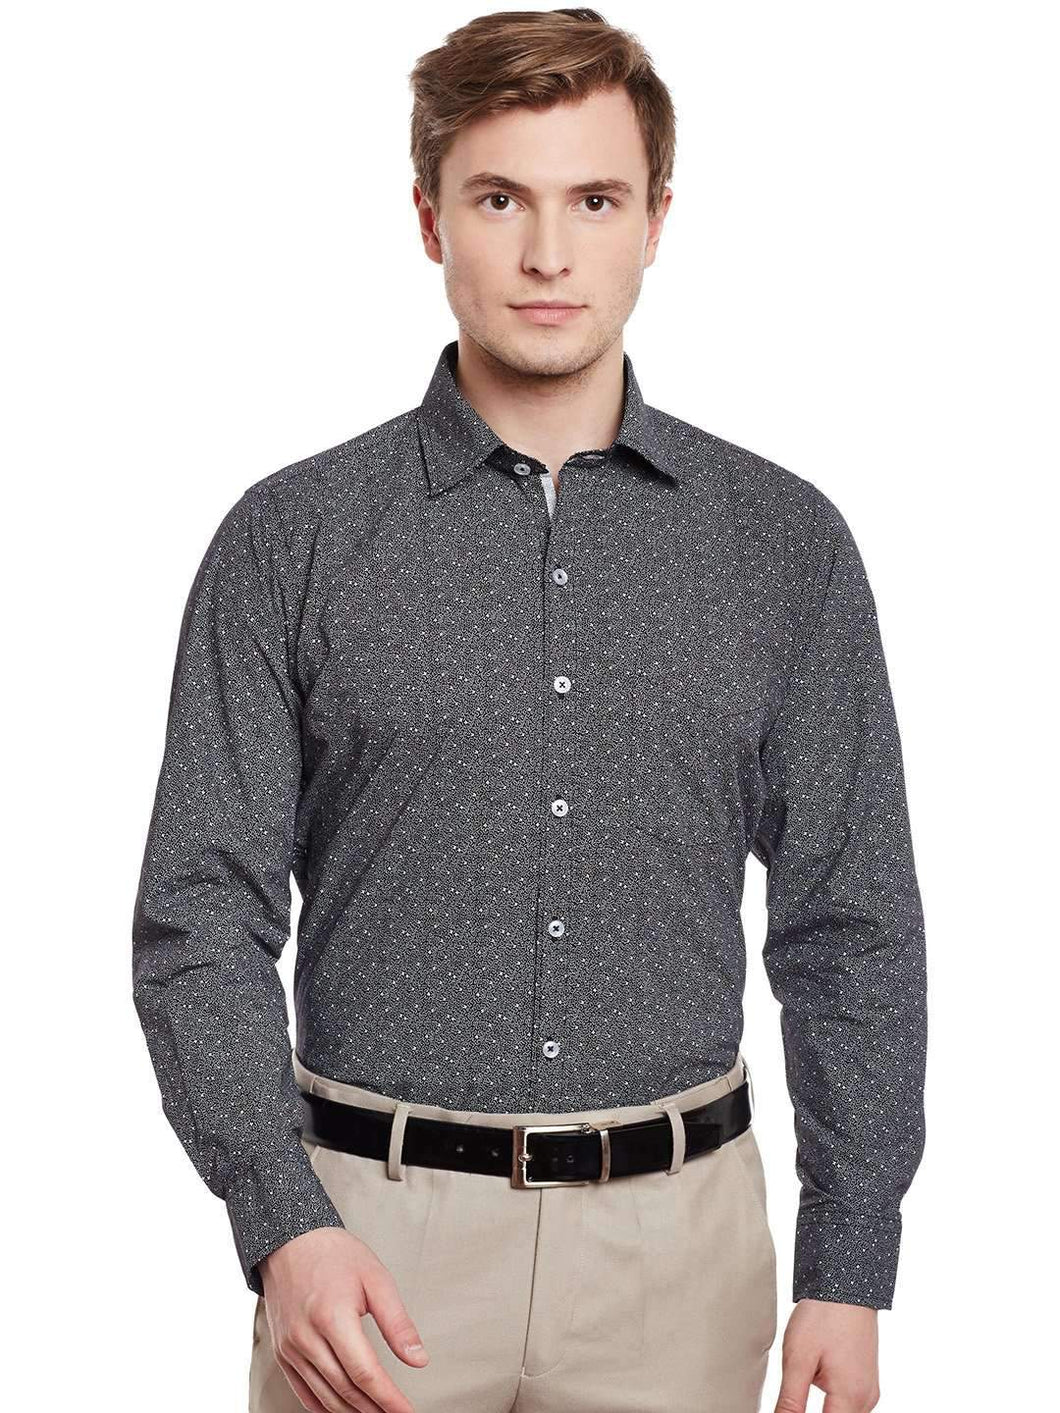 Richlook Black/White Formal Shirt